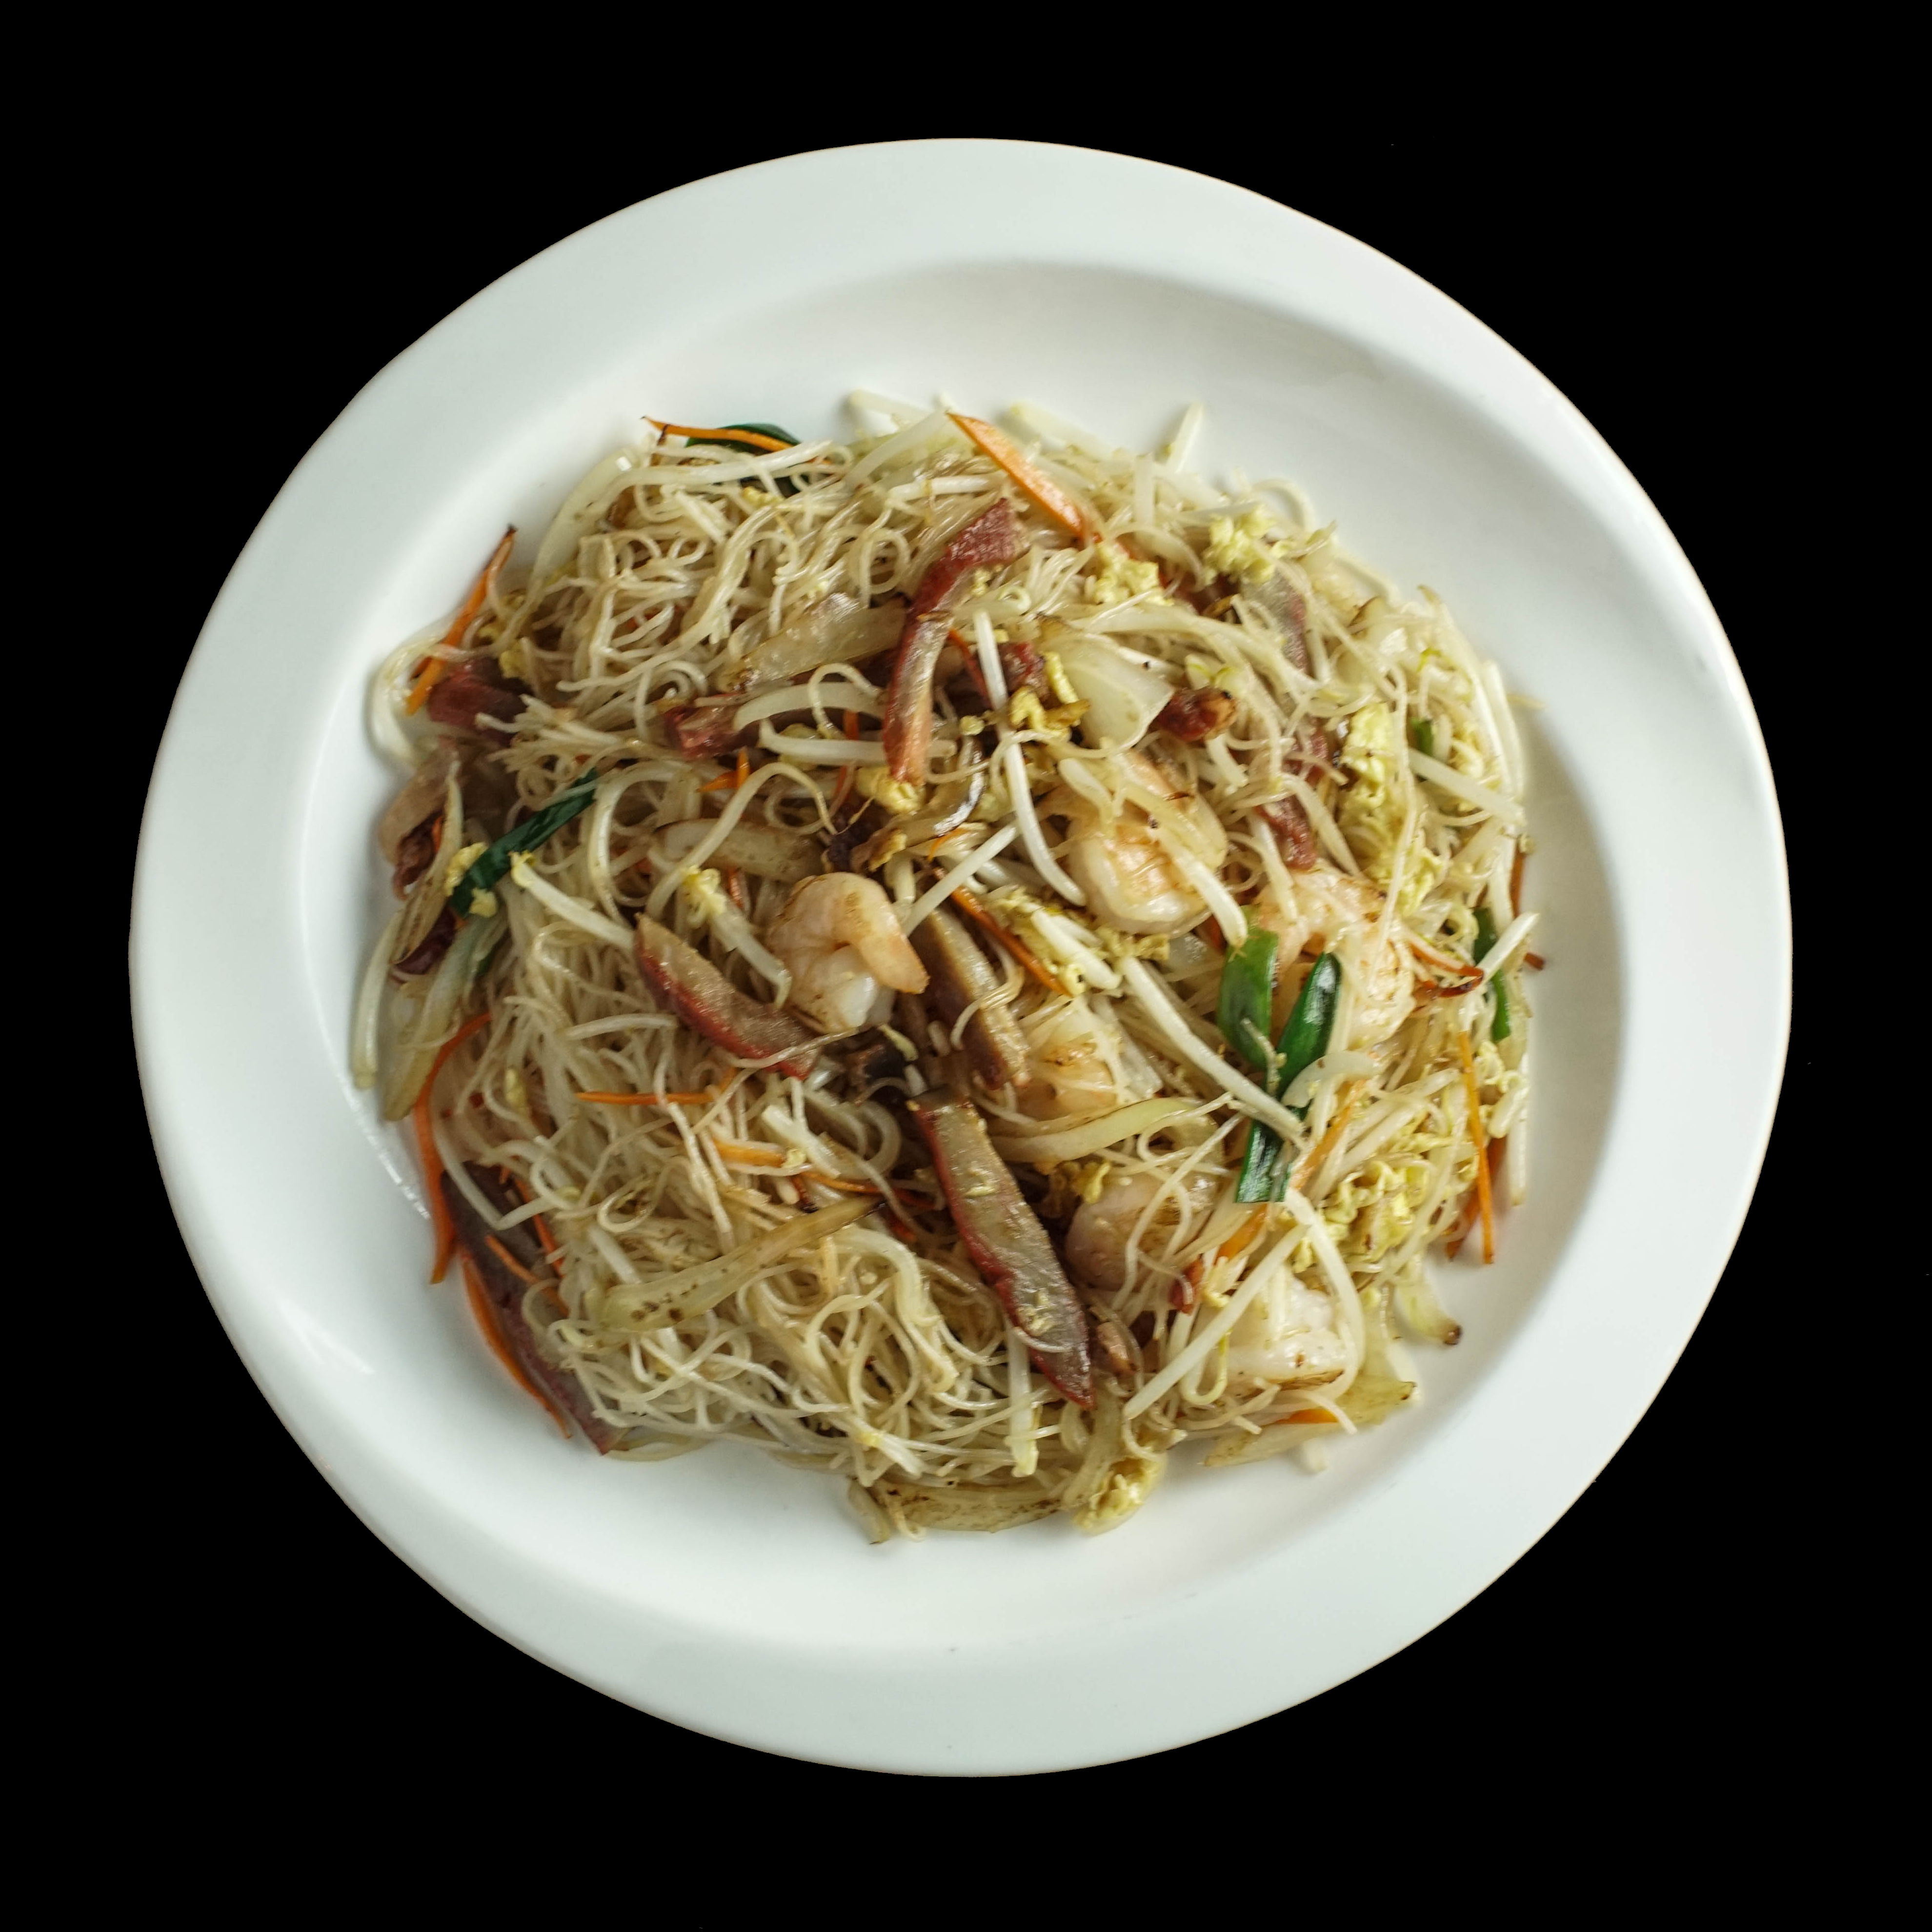 105. 招牌米粉 House Special Combination Thin Rice Noodle Image